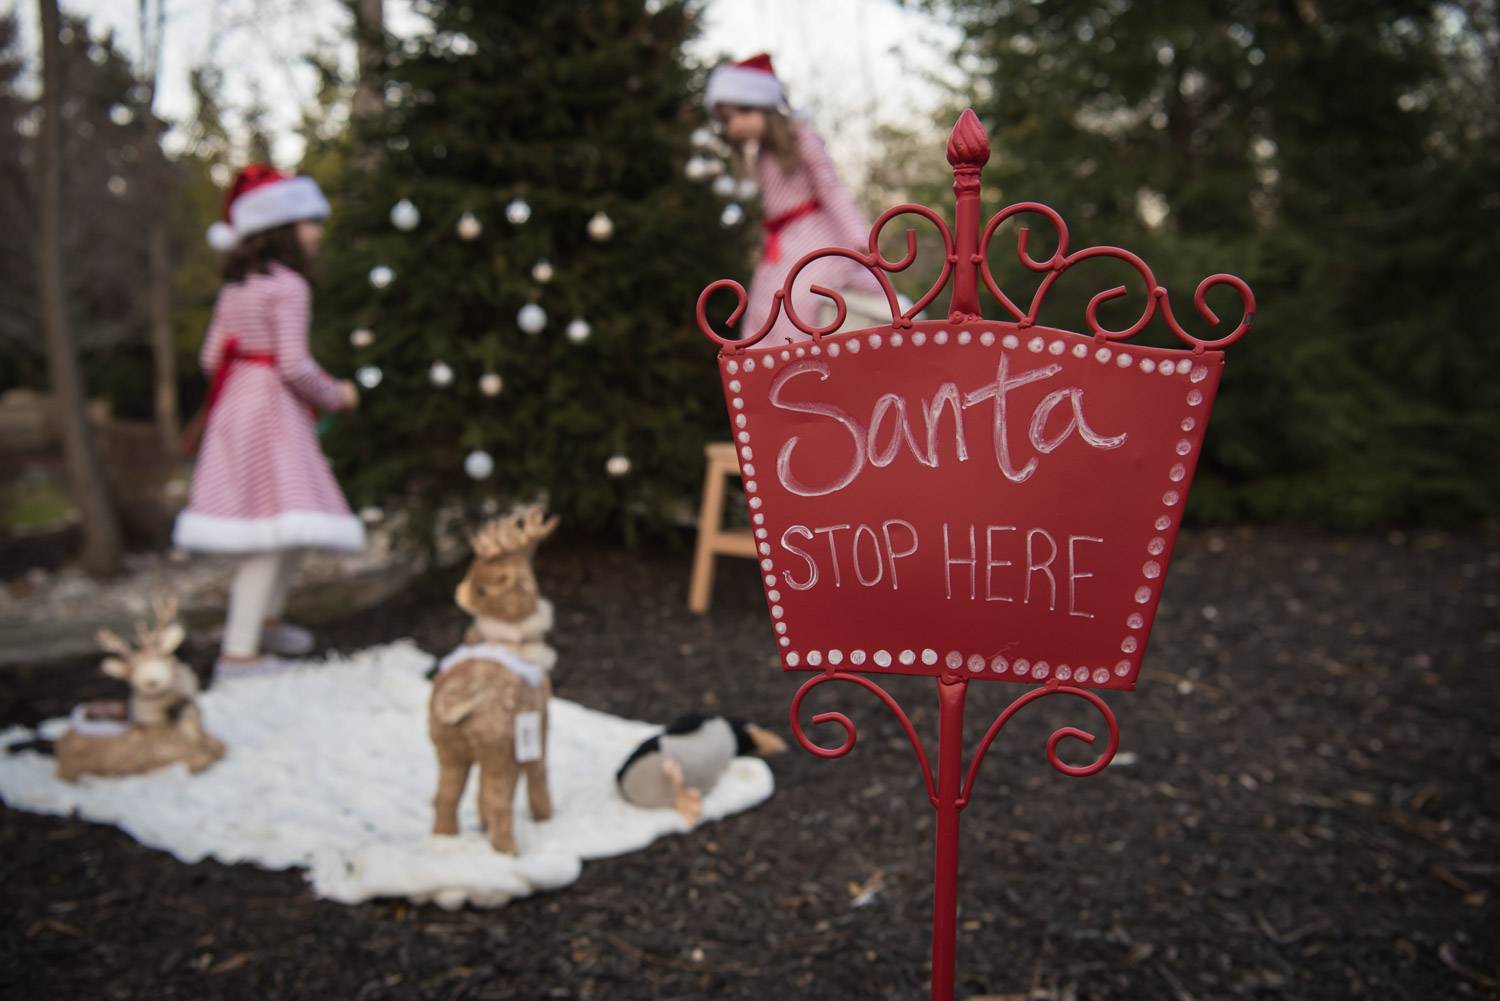 Santa Stop Here sign, South Lyon Photographer